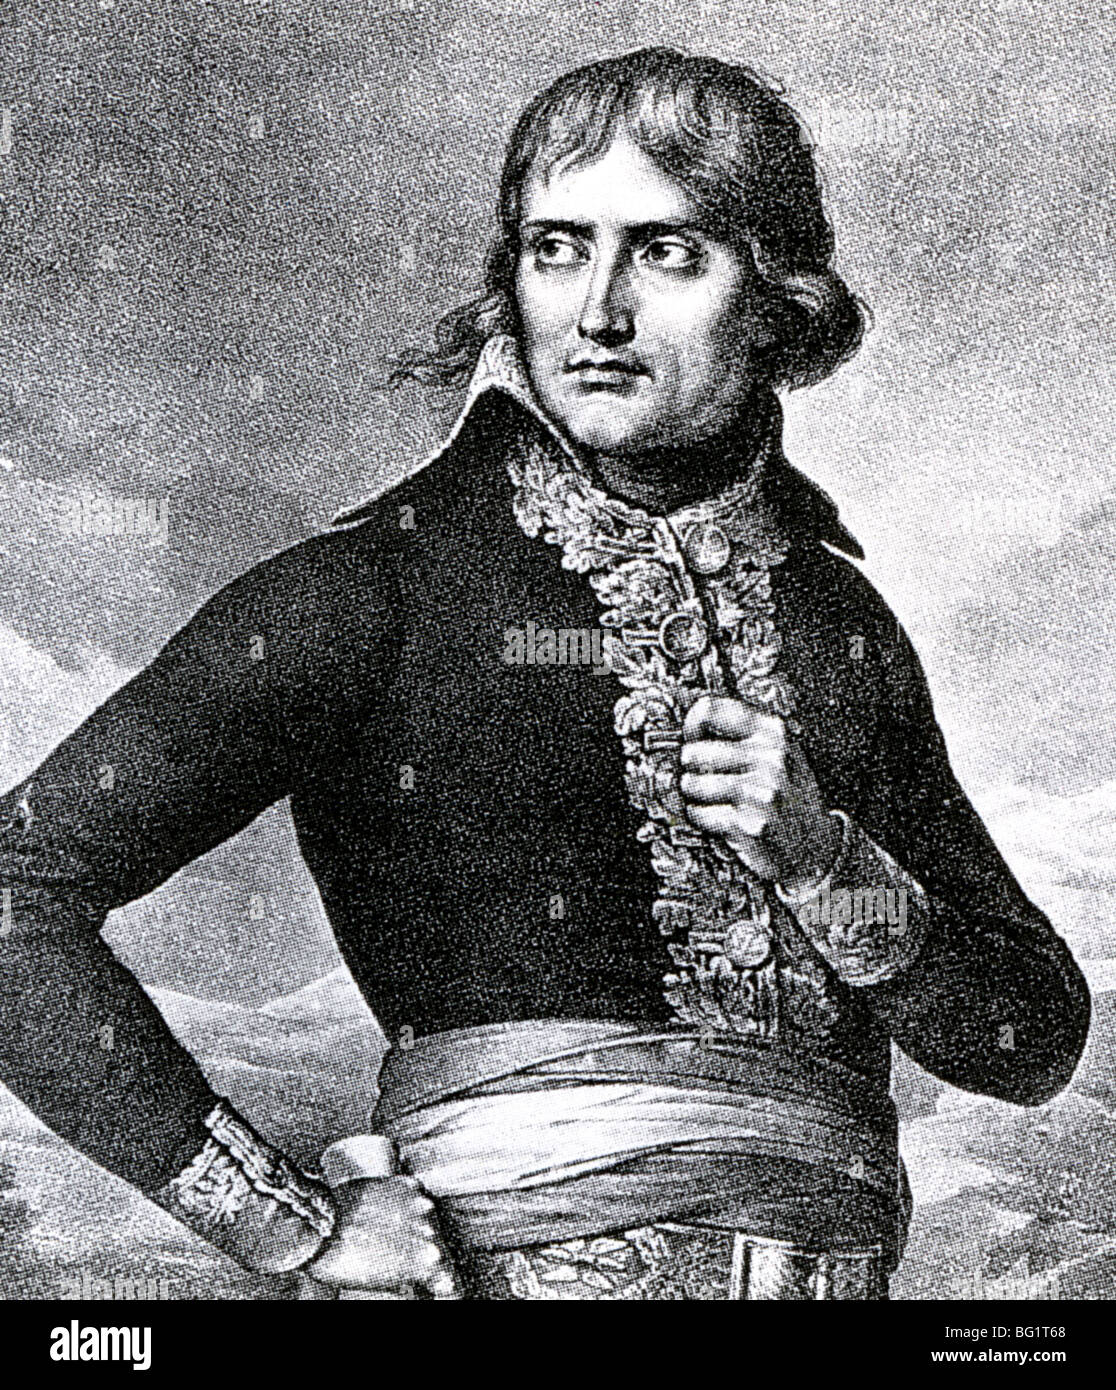 NAPOLEON BONAPARTE  (1769-1821) - French Emperor here in about 1795 - Stock Image